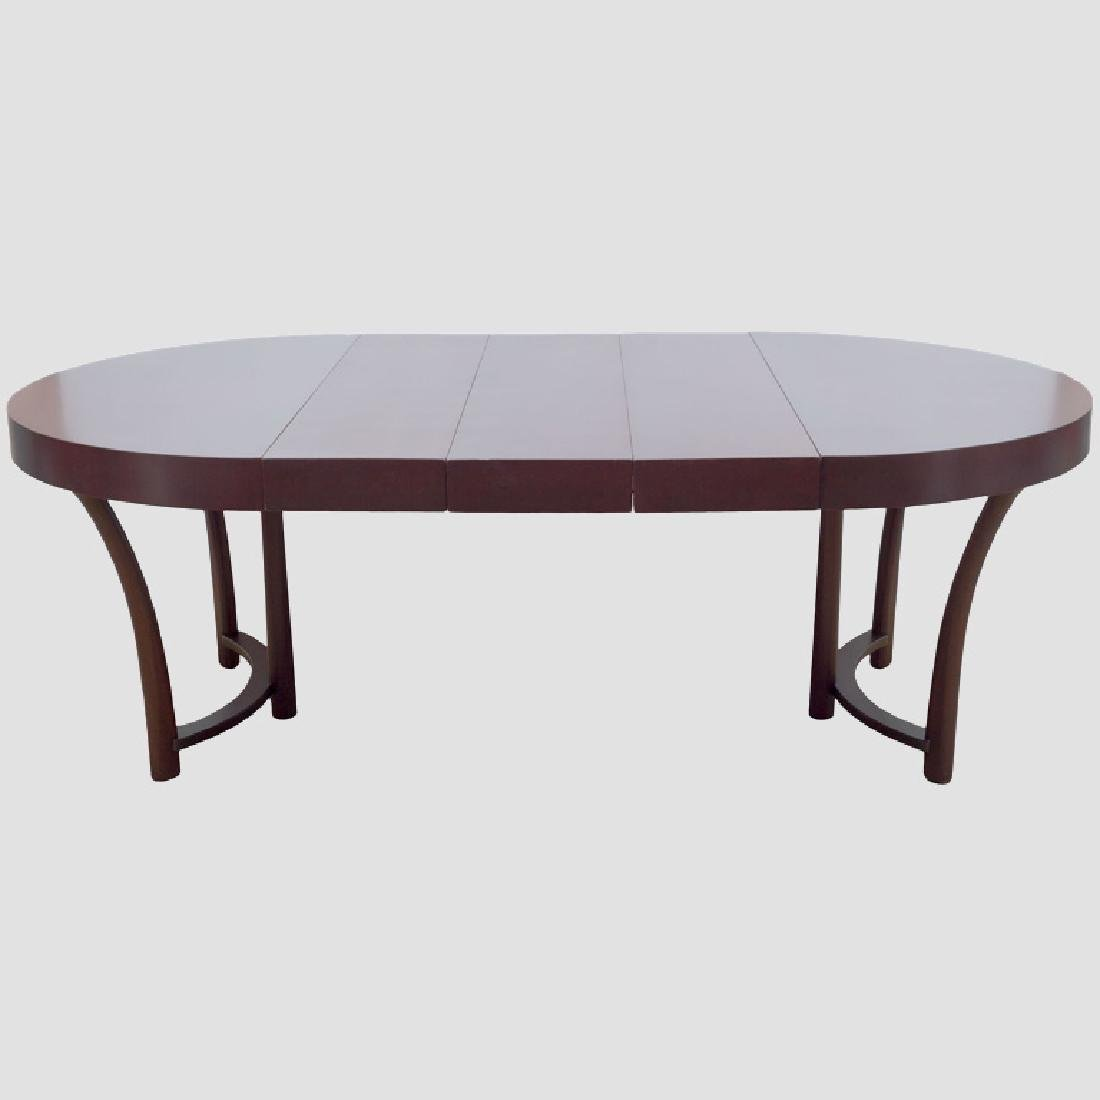 T.H Robsjohn-Gibbings Dining Table